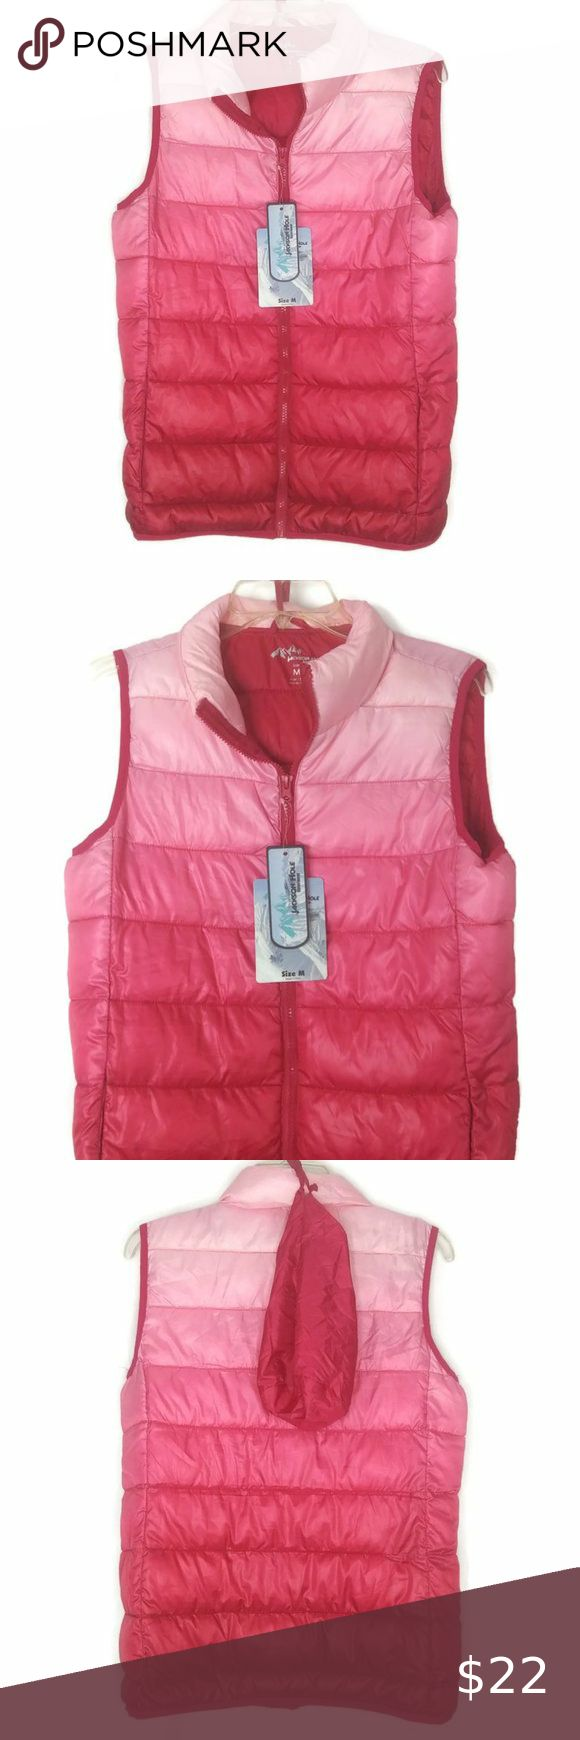 Jackson Hole Pink Ombre Puffer Vest Pink Ombre Jackson Hole Puffer Vest [ 1740 x 580 Pixel ]